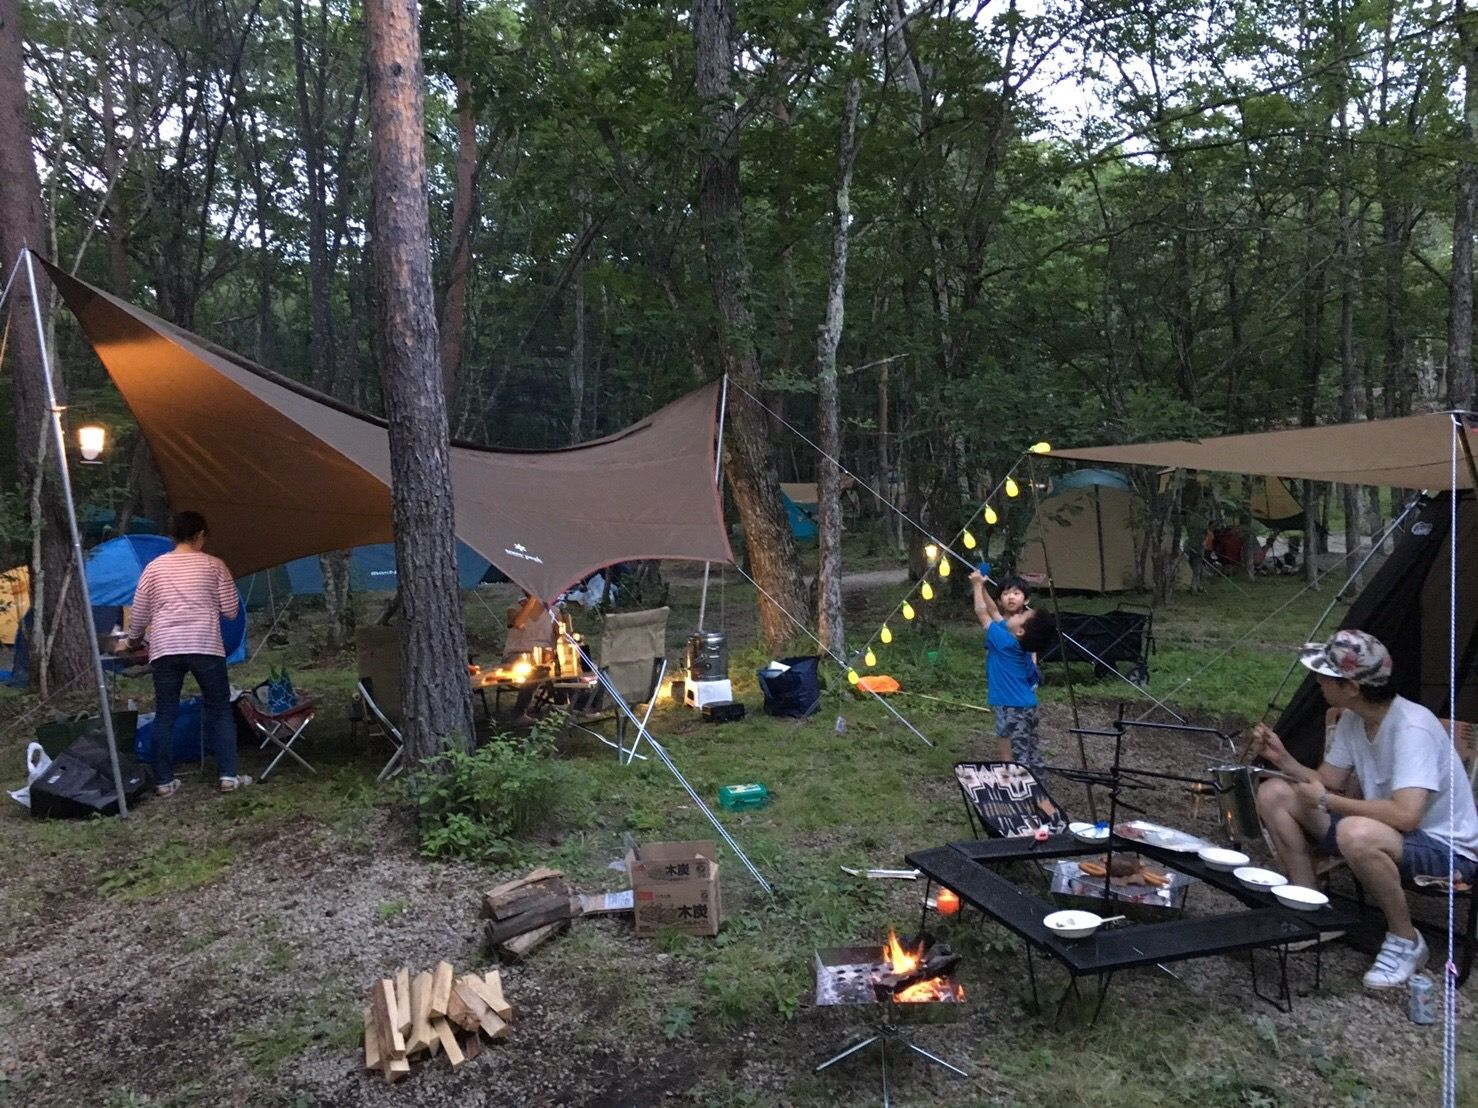 camping in the woods feels so good especially family and good